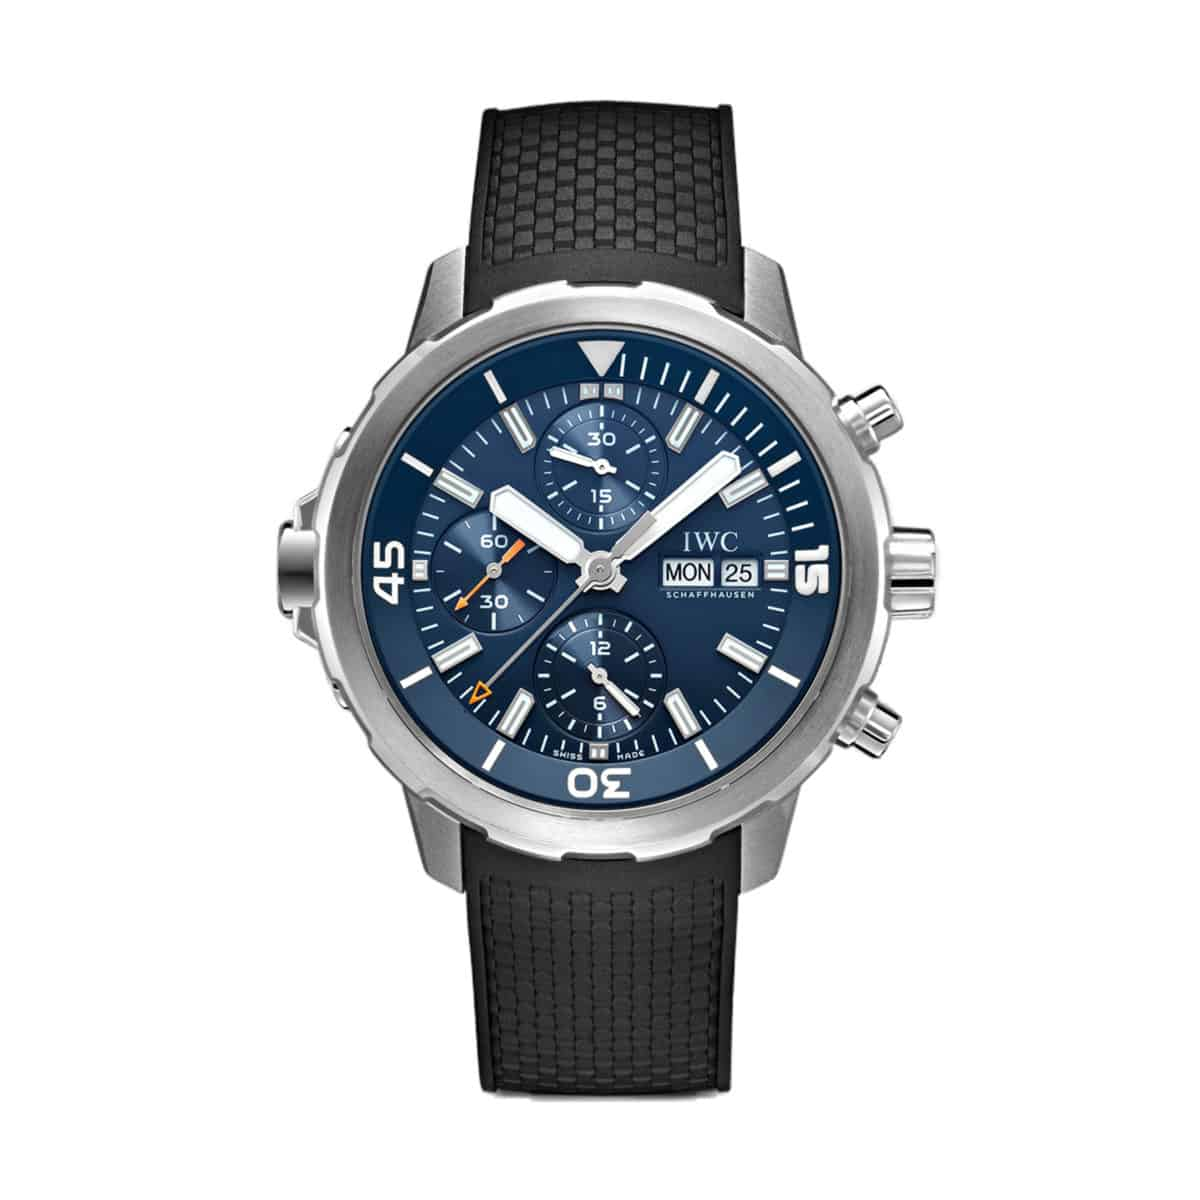 """IW376805 — IWC Schaffhausen Aquatimer Chronograph Edition """"Expedition Jacques-Yves Cousteau"""""""